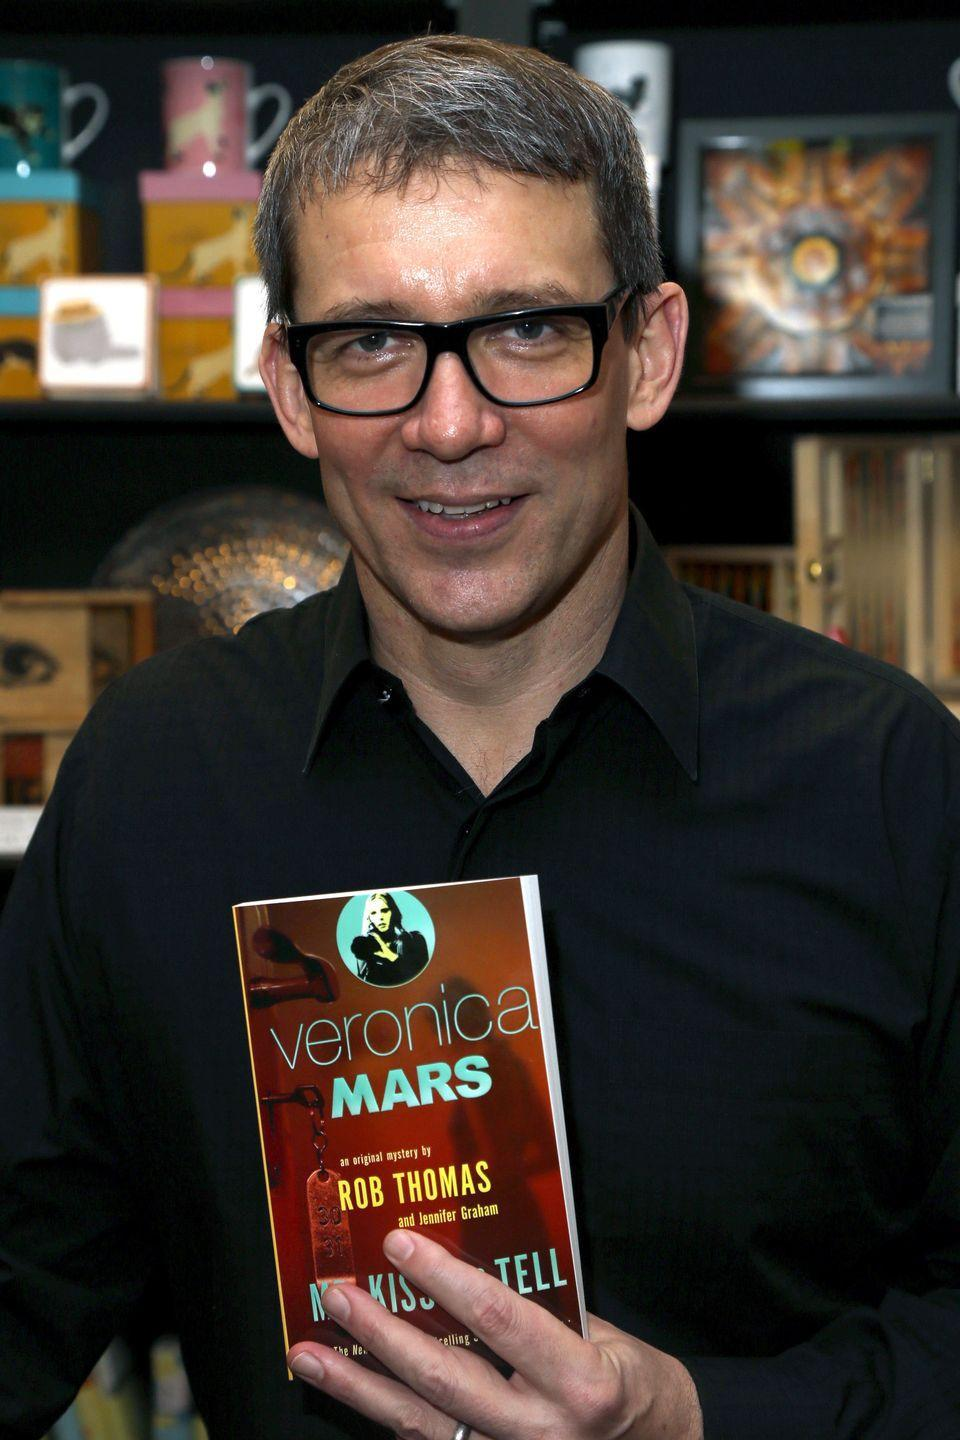 "<p>Usually the book comes first, but not in the case of <em>Veronica Mars</em>. The <a href=""https://www.penguinrandomhouse.com/series/DD4/veronica-mars-series"" rel=""nofollow noopener"" target=""_blank"" data-ylk=""slk:two accompanying novels"" class=""link rapid-noclick-resp"">two accompanying novels</a> were published in 2014, and the audiobooks were read by Kristen. </p>"